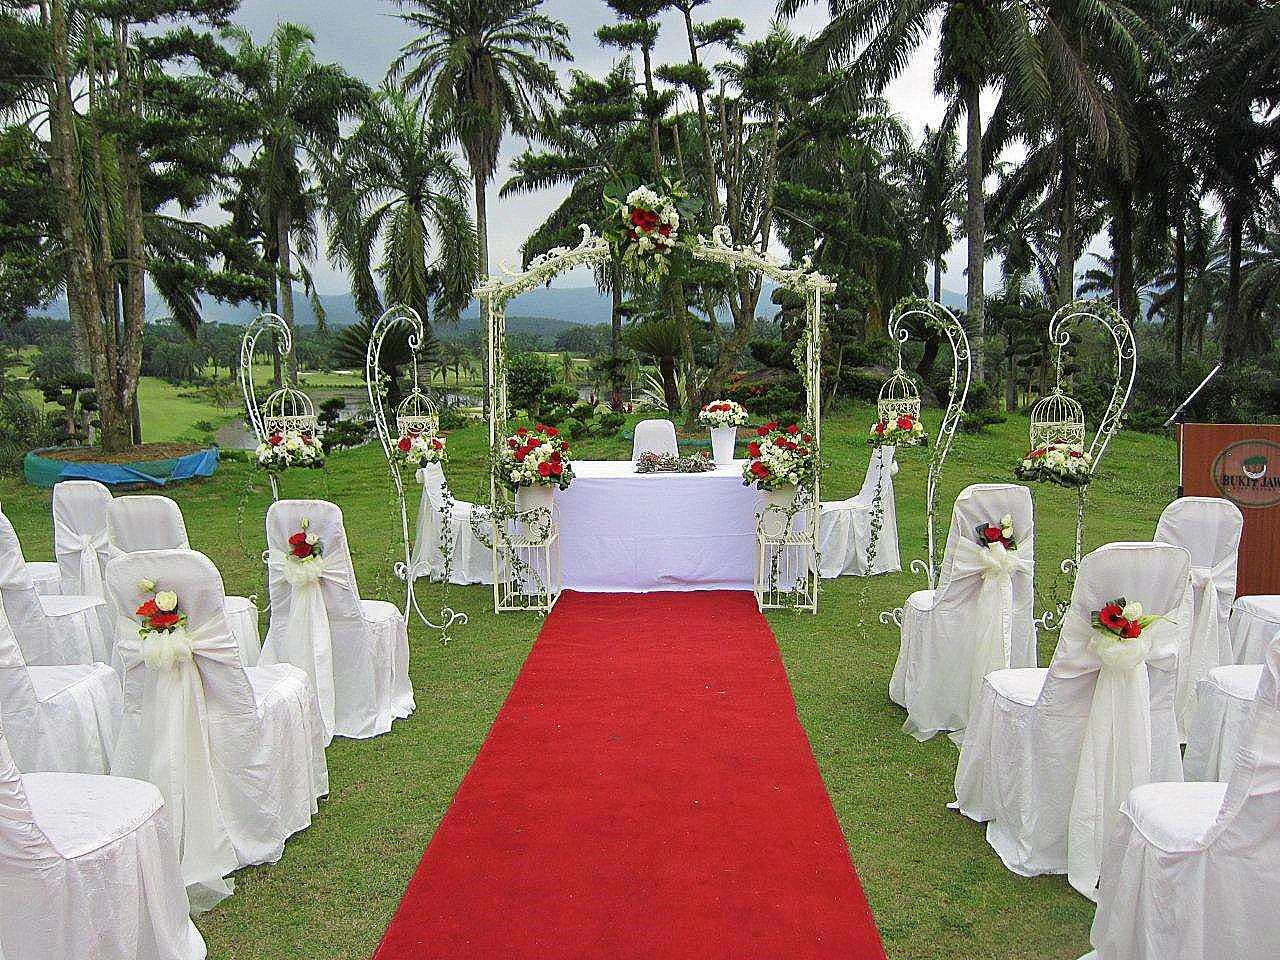 Liangliang diary garden wedding decoration bukit jawi golf course - Garden wedding ideas decorations ...